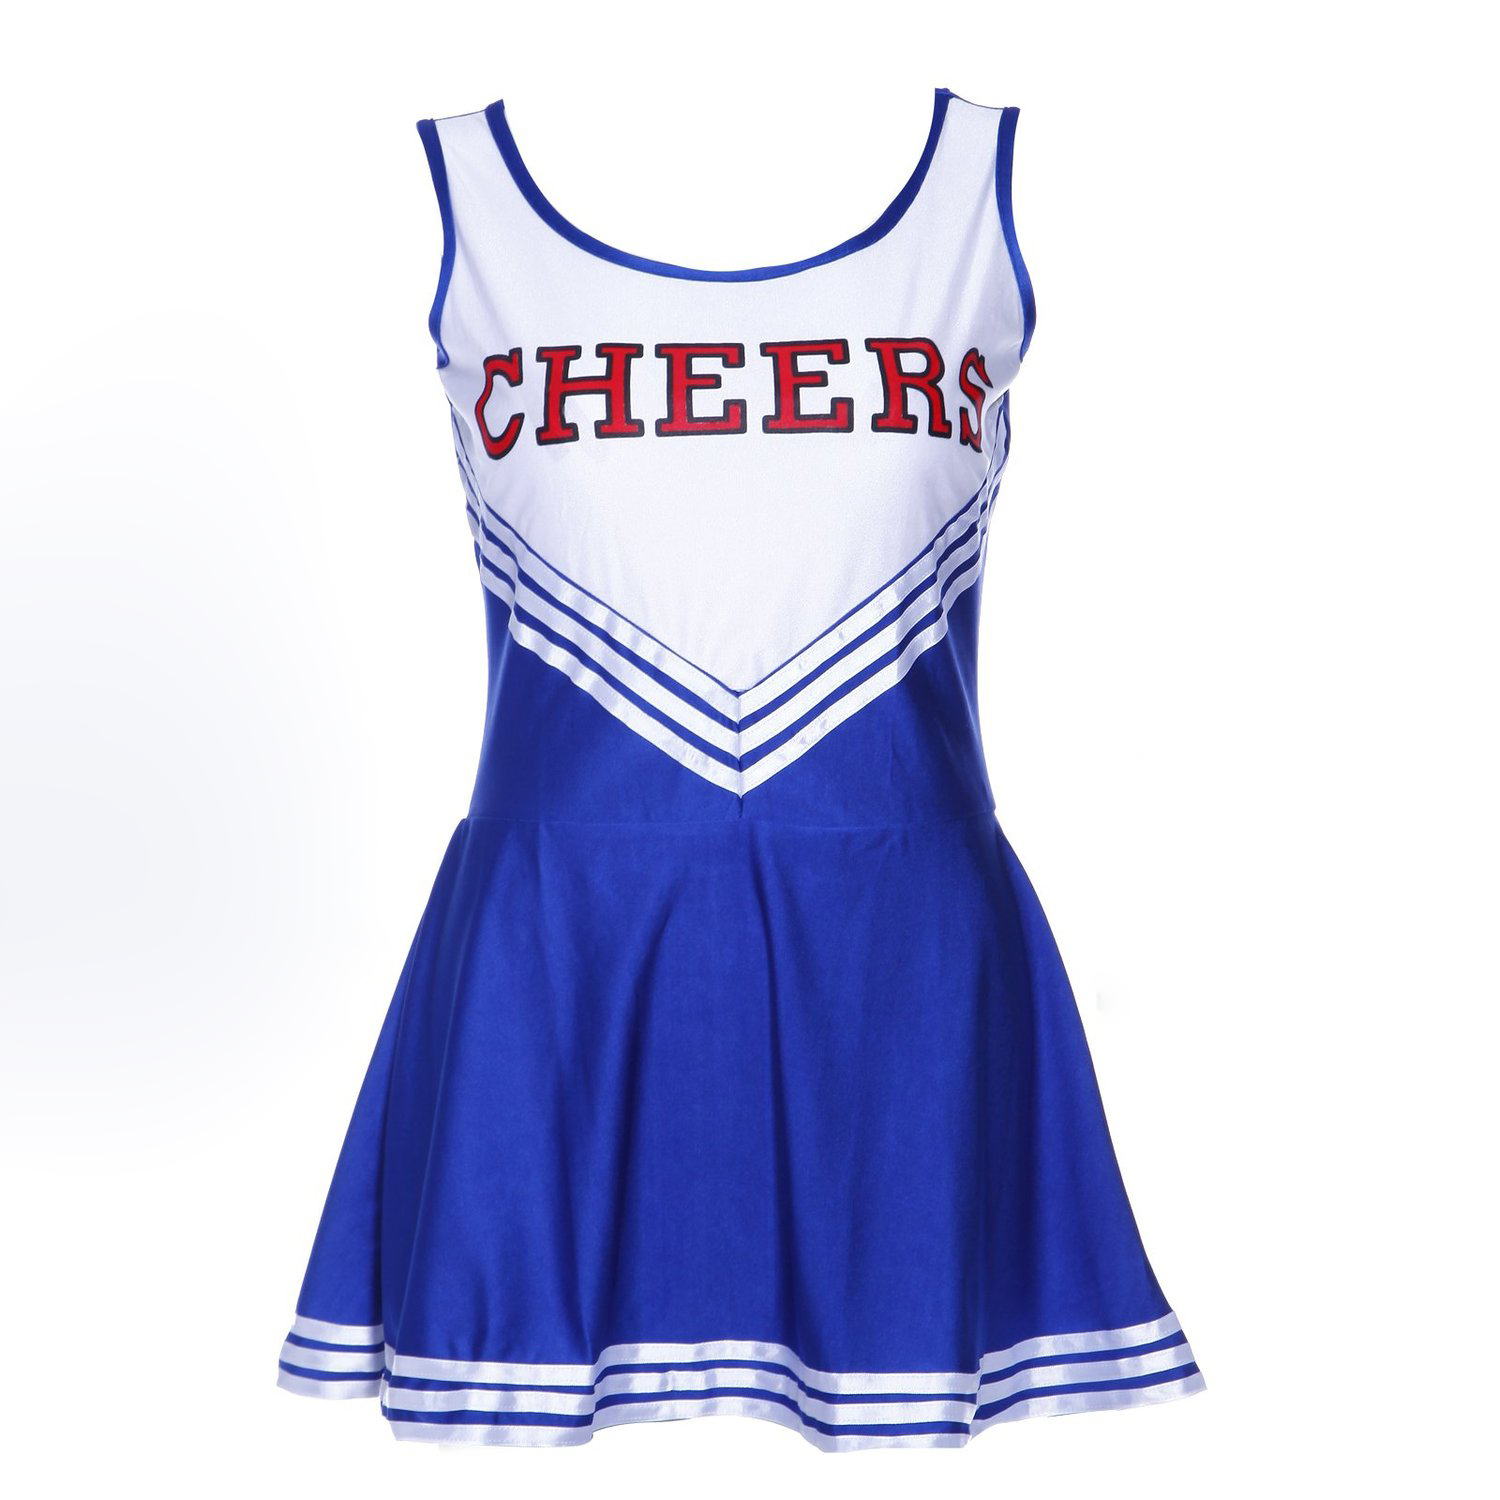 Pom-pom girl tank top dress cheer leader blue suit costume XL (42-44) school football ...